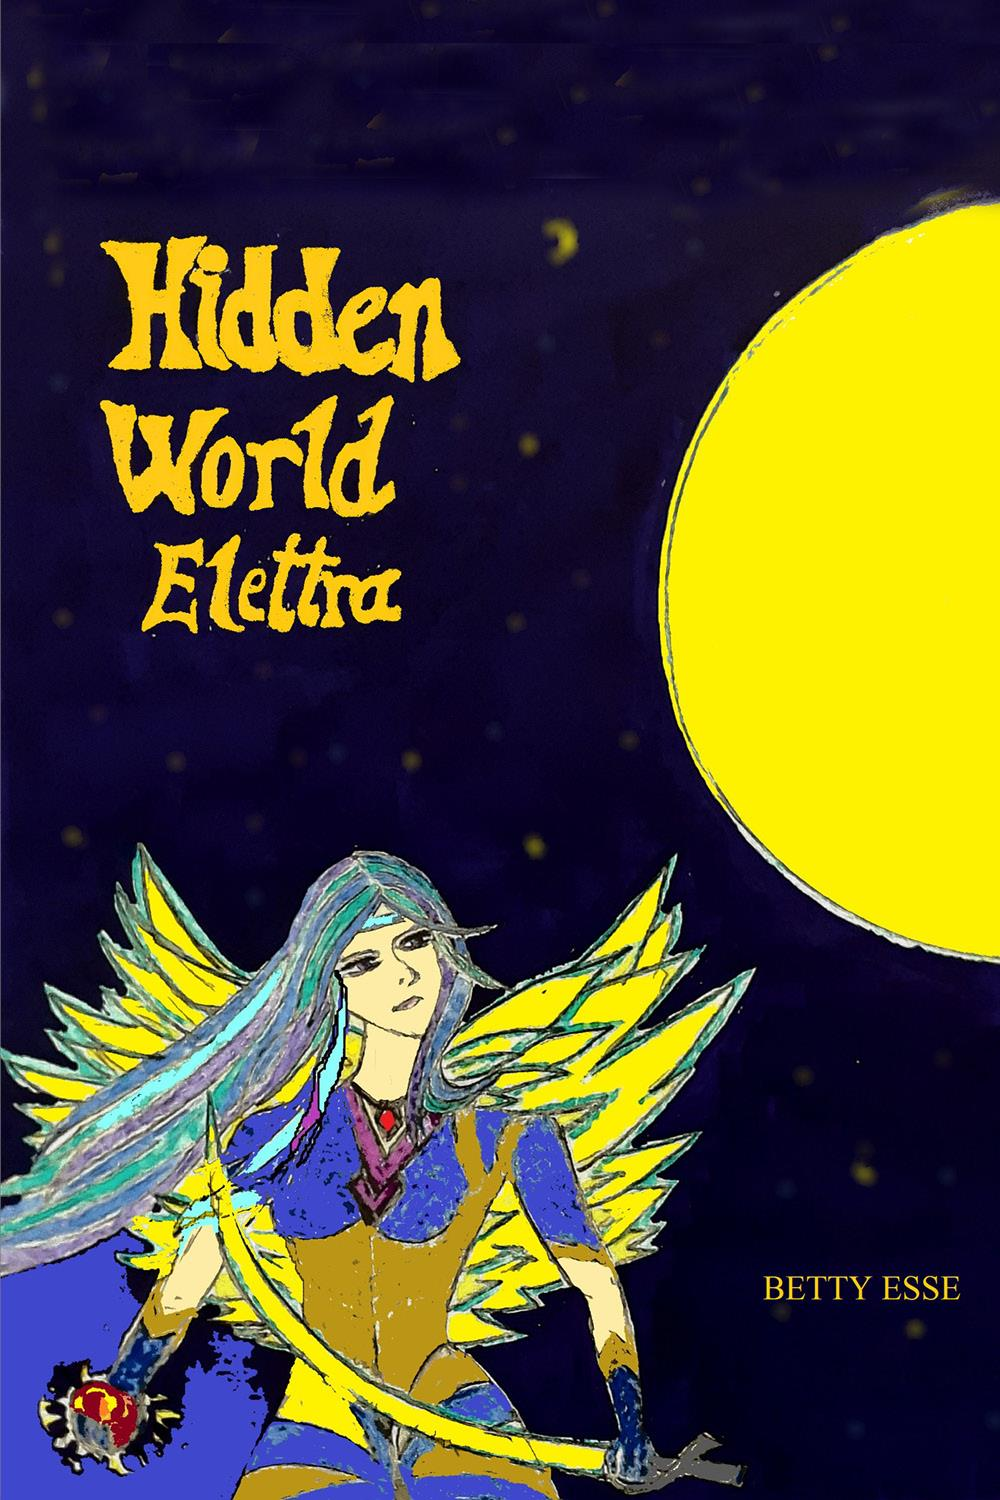 Hidden World Elettra